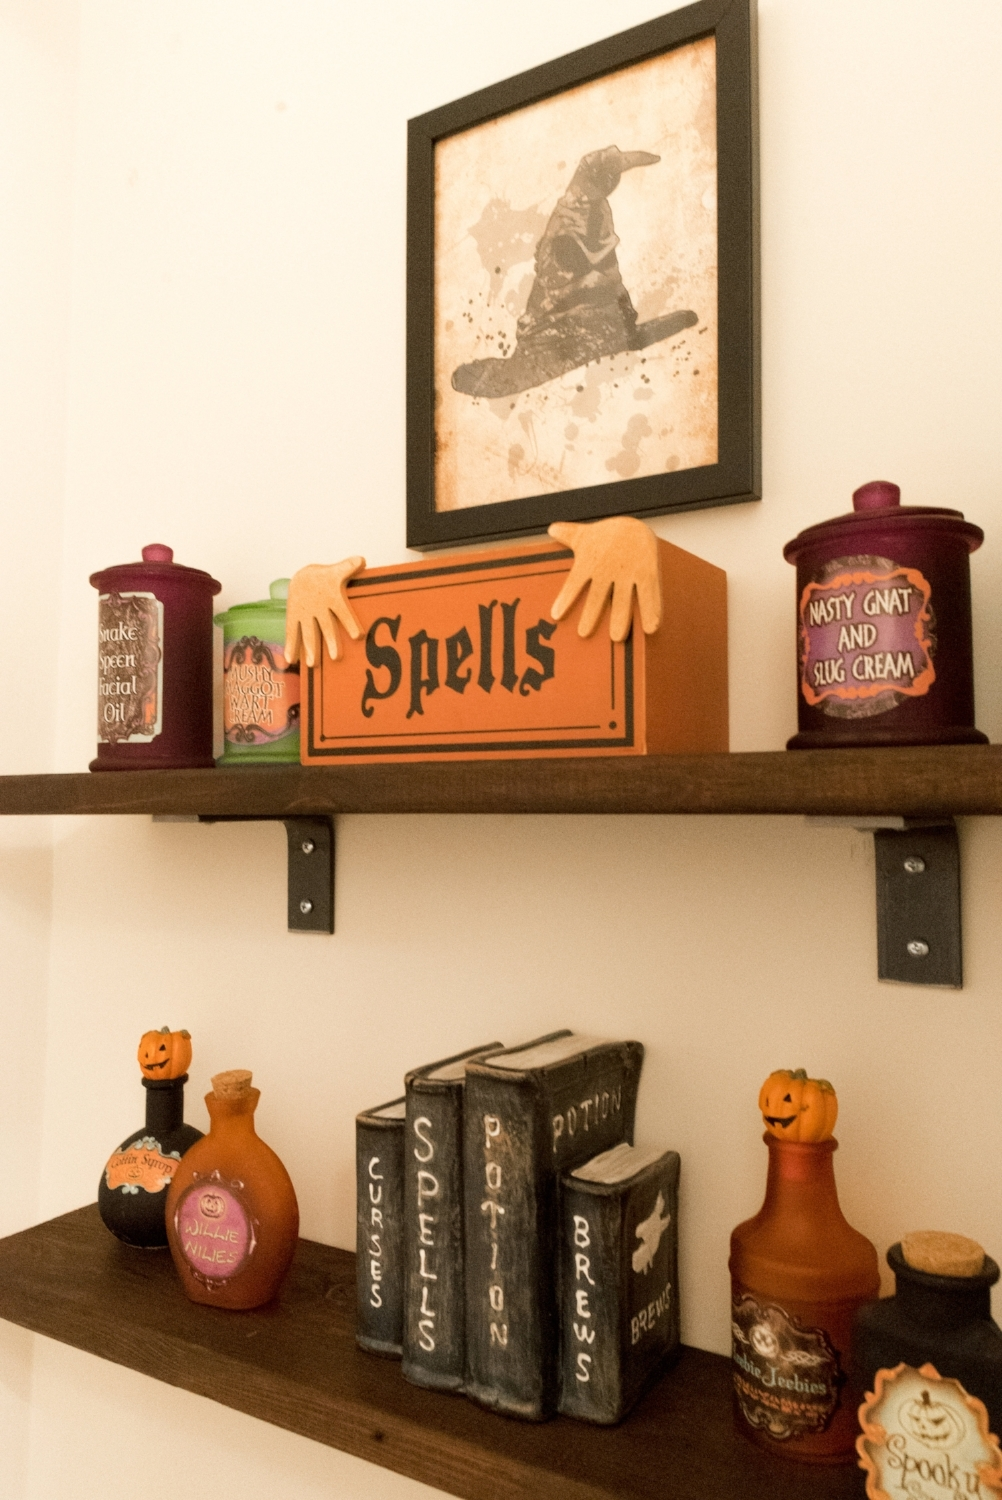 Etsy printables are such budget friendly options, like this Sorting Hat above our potions and spells shelves.